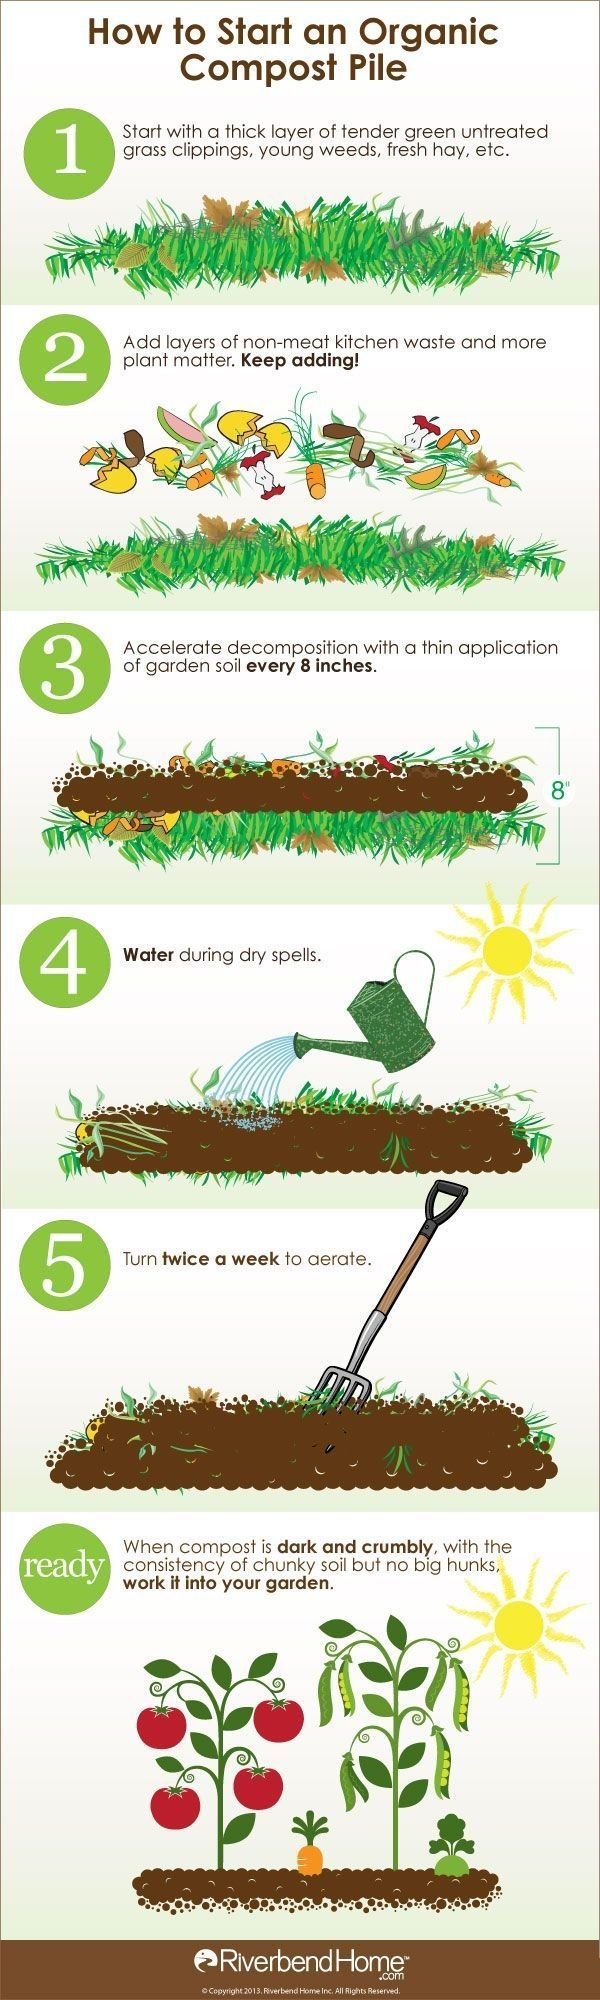 to get you started on composting check out the 5 simple steps on how to